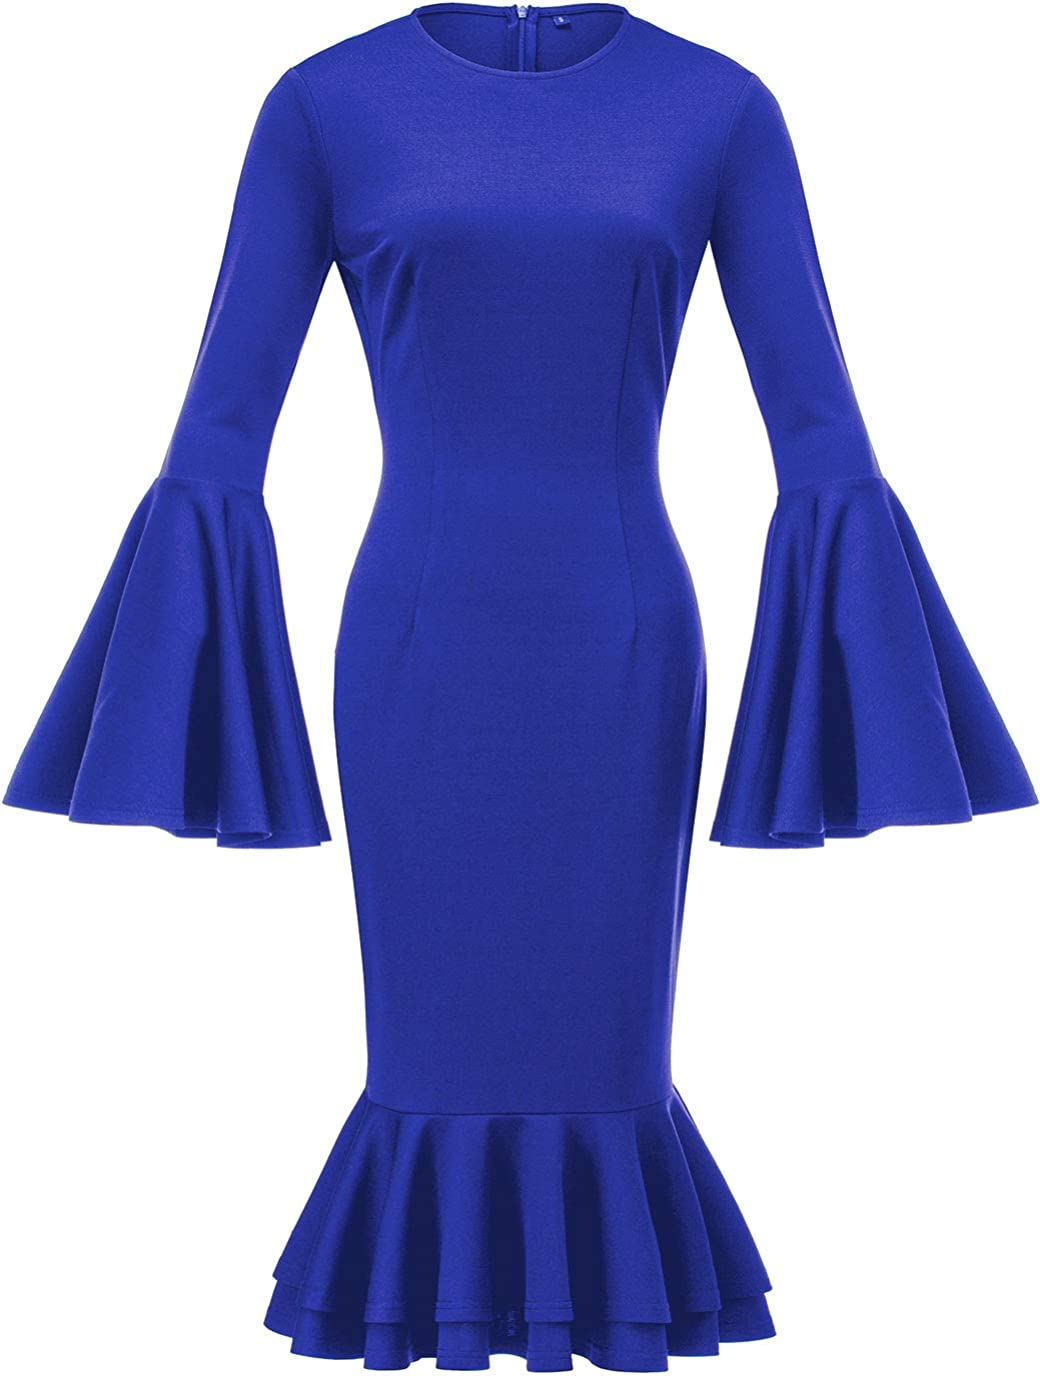 HongyuAmy Women's Bell Sleeve Fishtail Dresses Bodycon Cocktail Party Pencil Dress